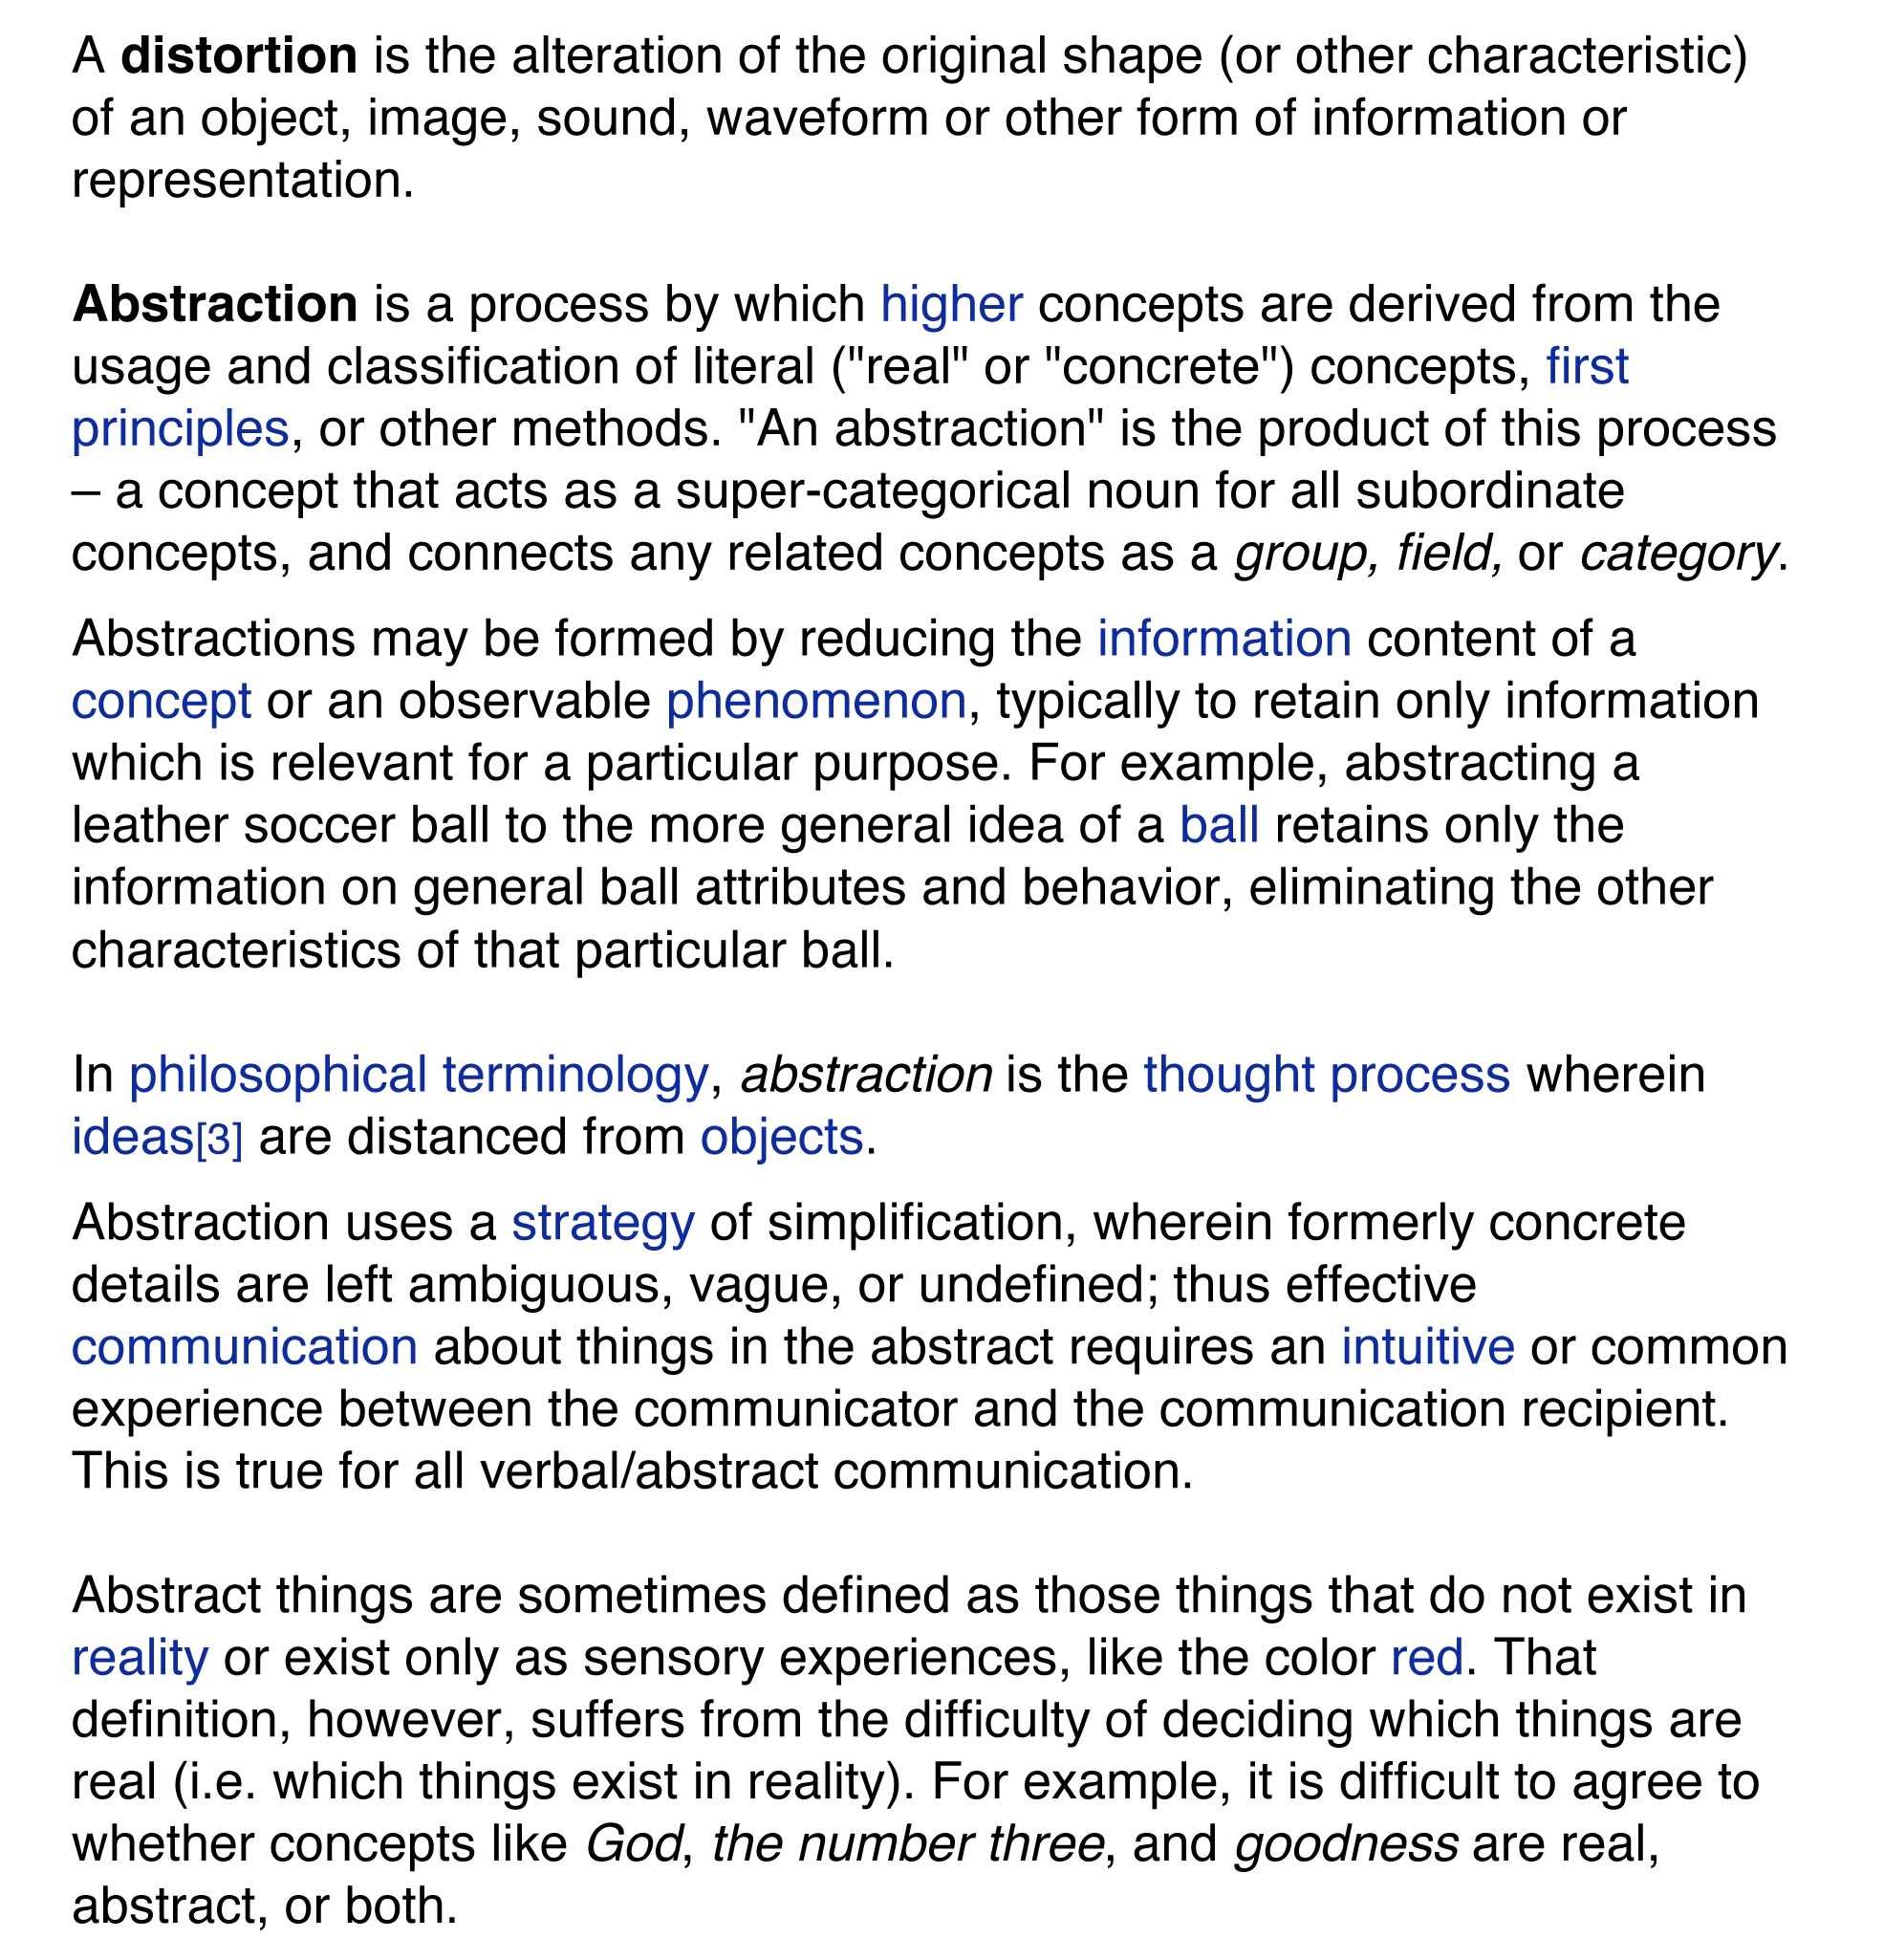 Microsoft Word   Distortion Vs Abstraction.doc